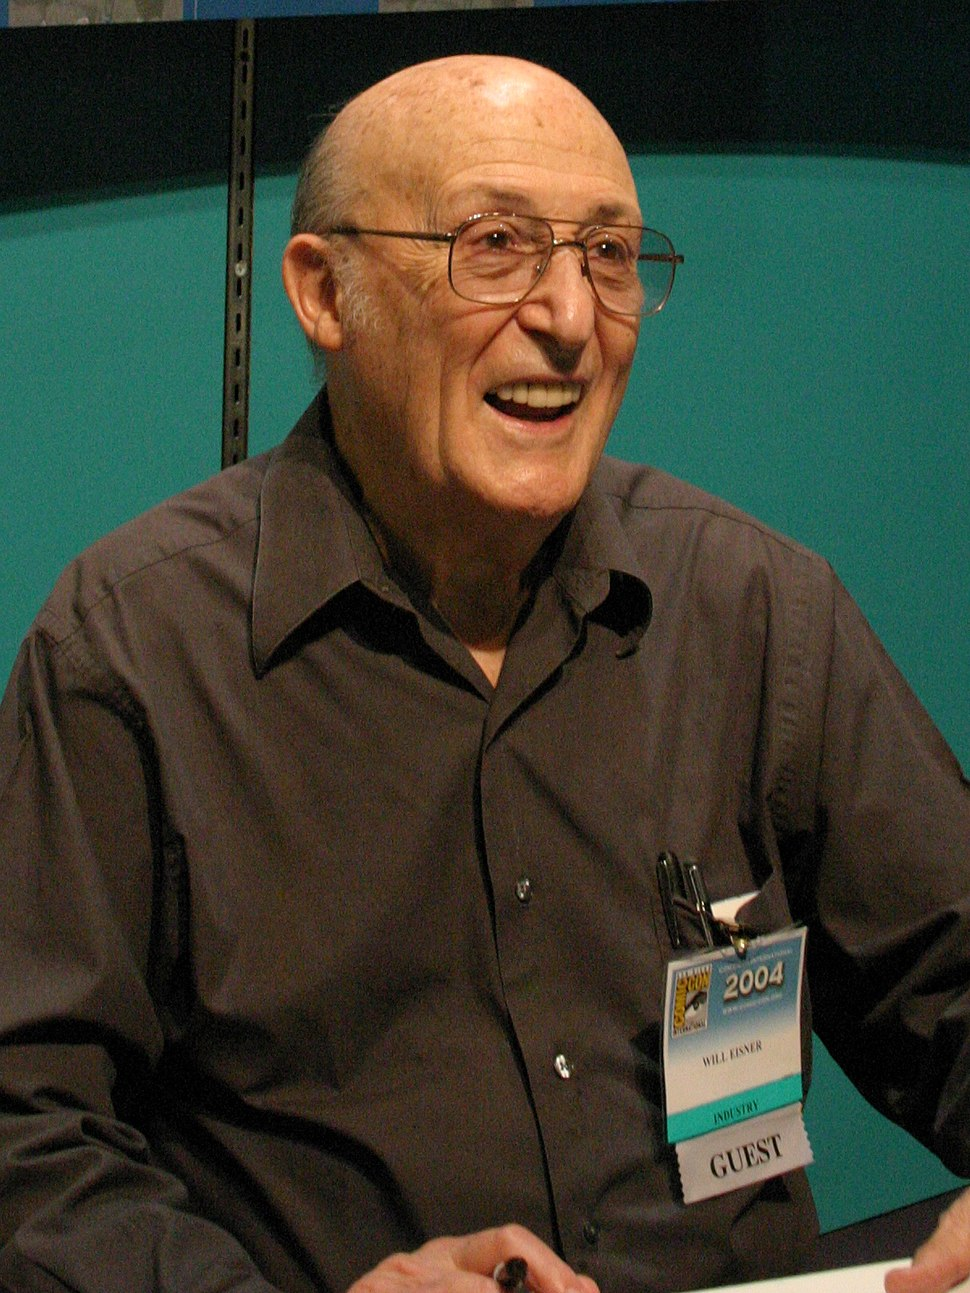 Will Eisner (San Diego Comic Con, 2004)